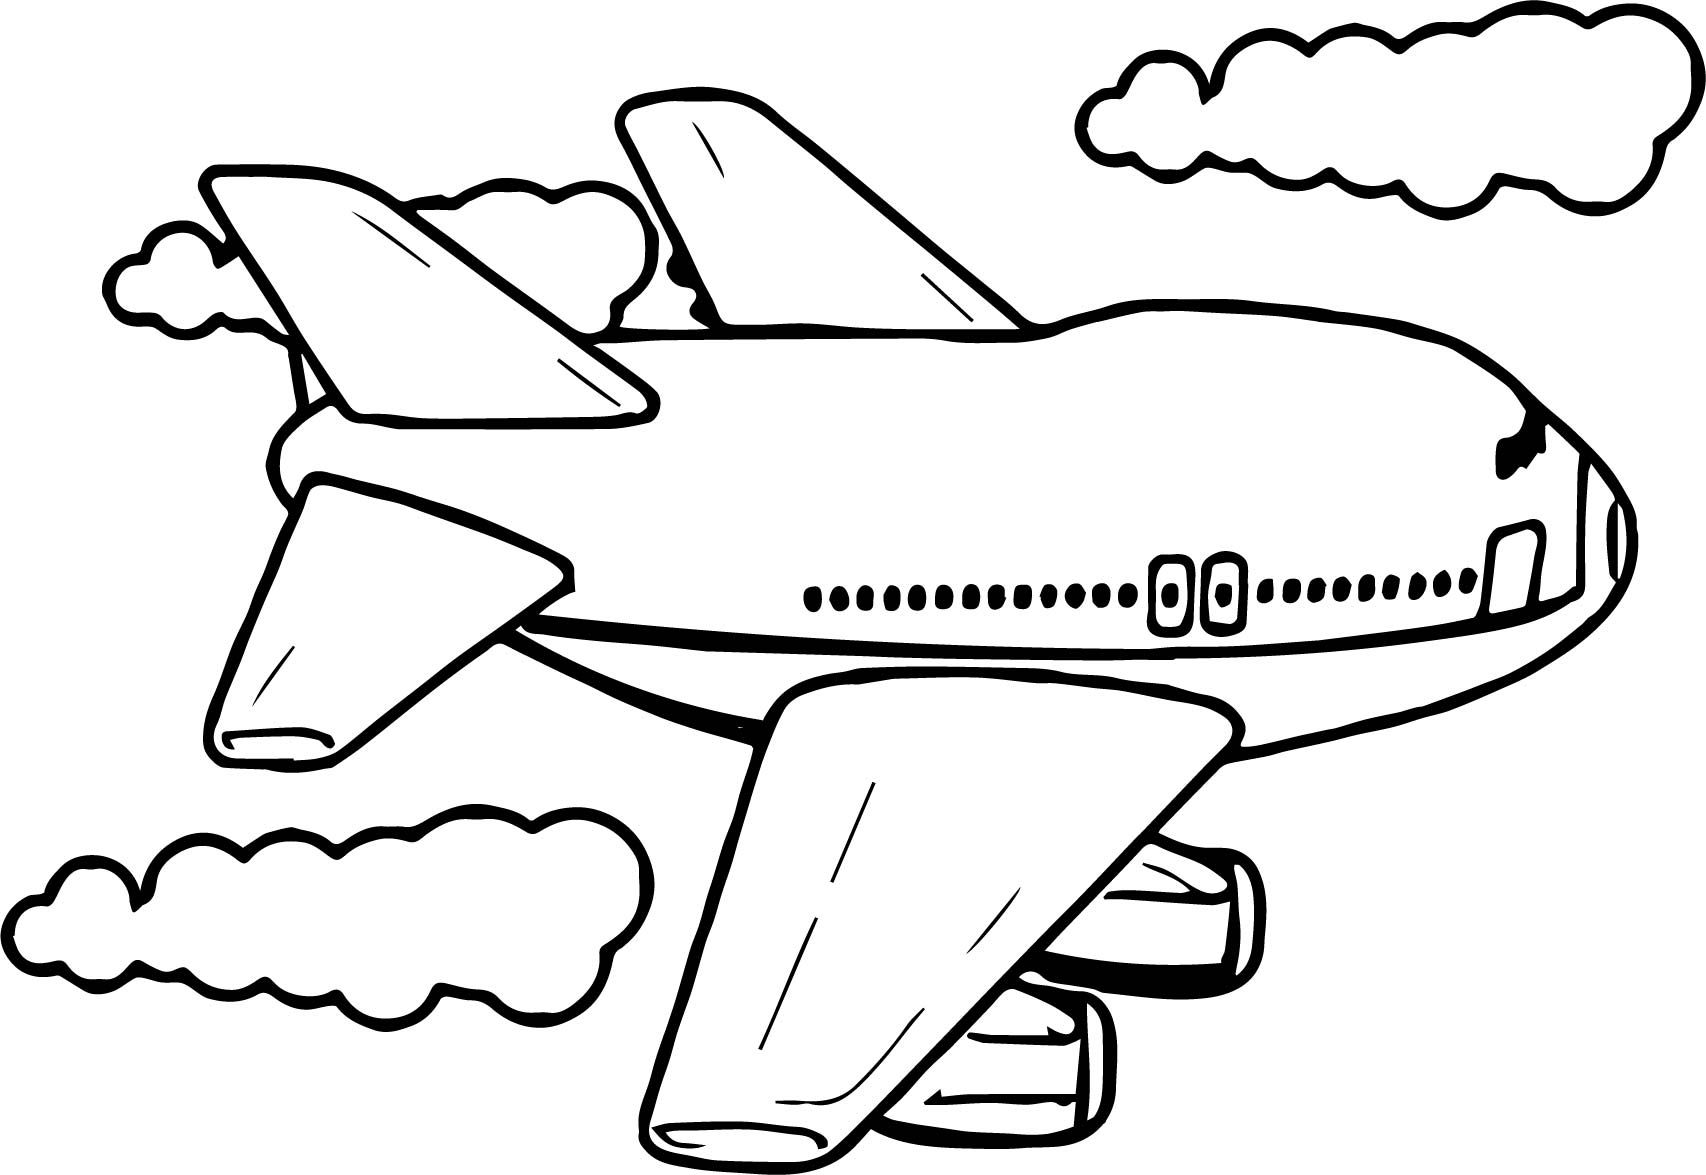 Awesome Cute Fly Airplane Coloring Page